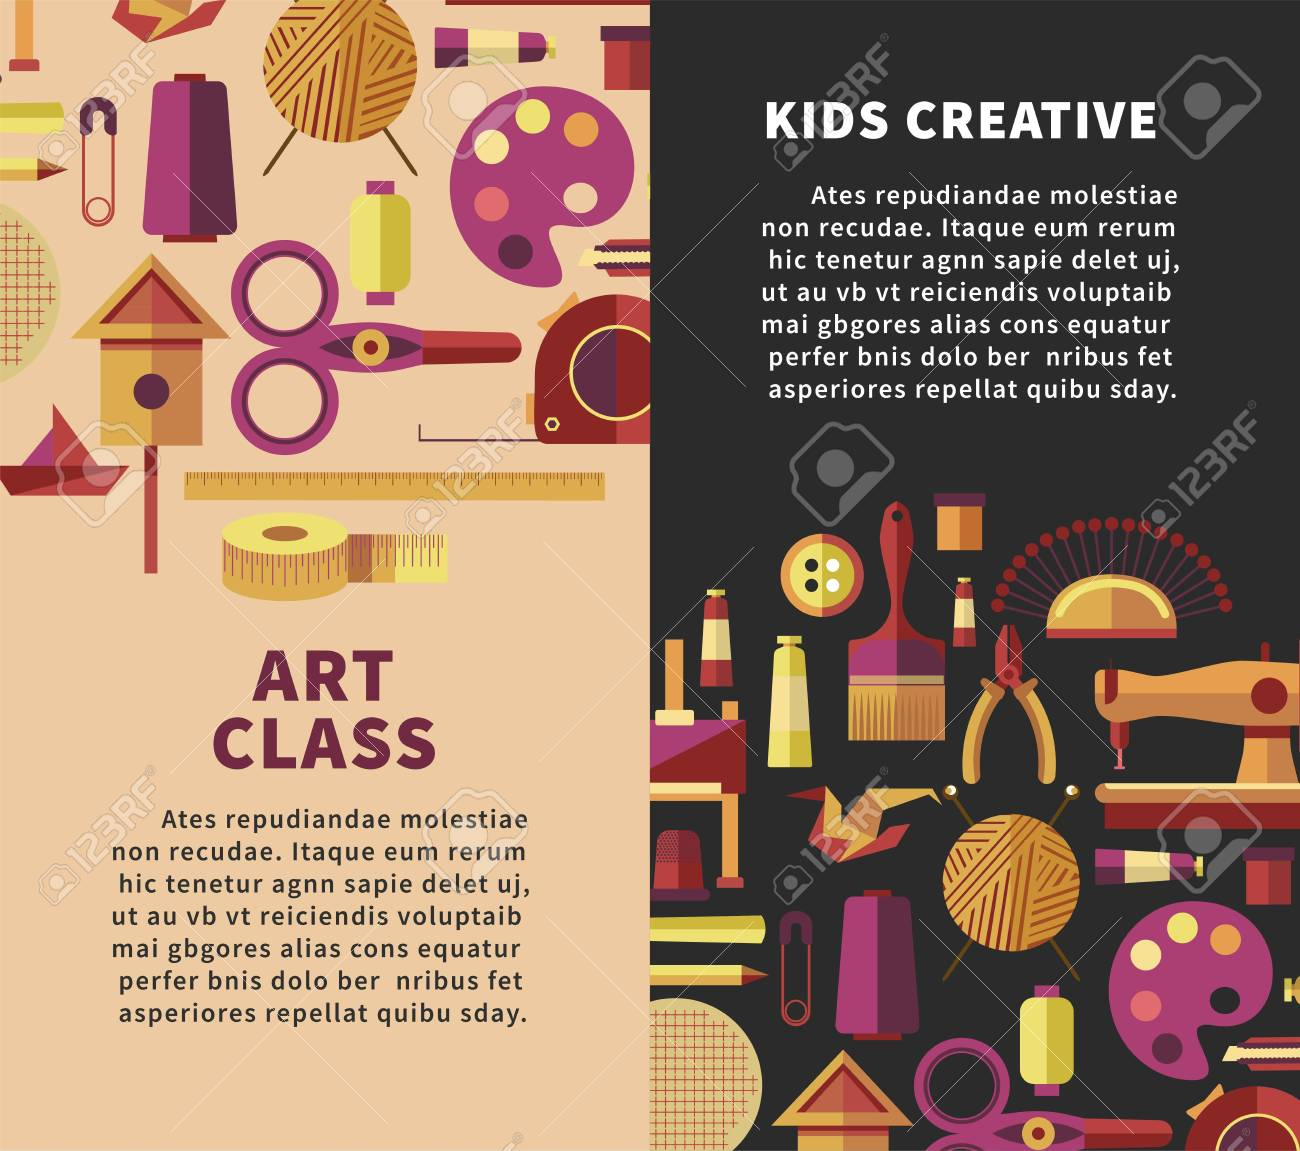 Creative Art Vector Poster For Kids Diy Projects Or Handicraft